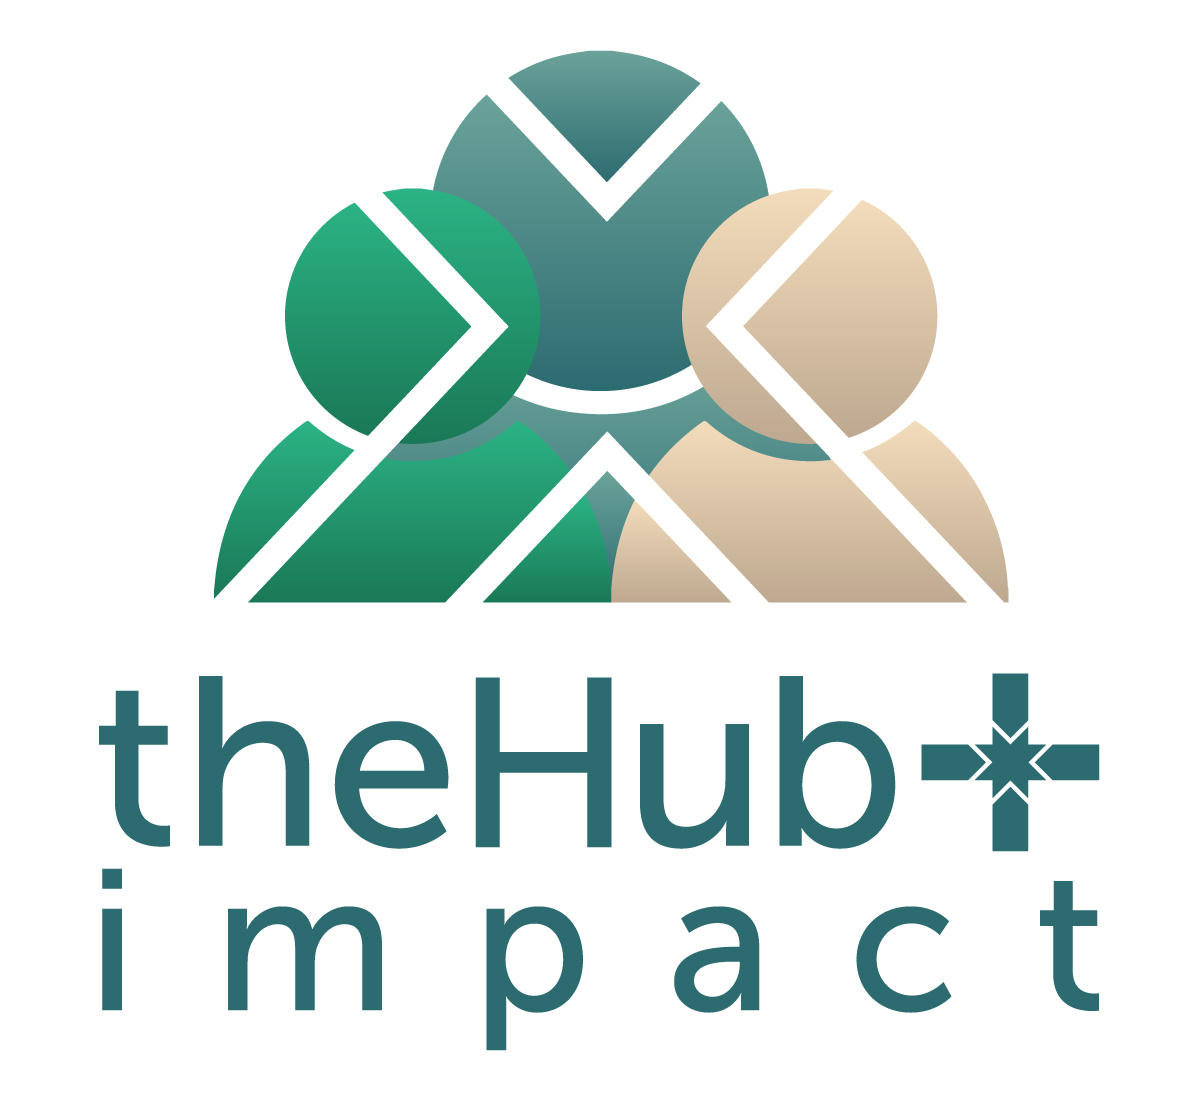 DOSE Design and Marketing the Hub pharmacy impact logotype